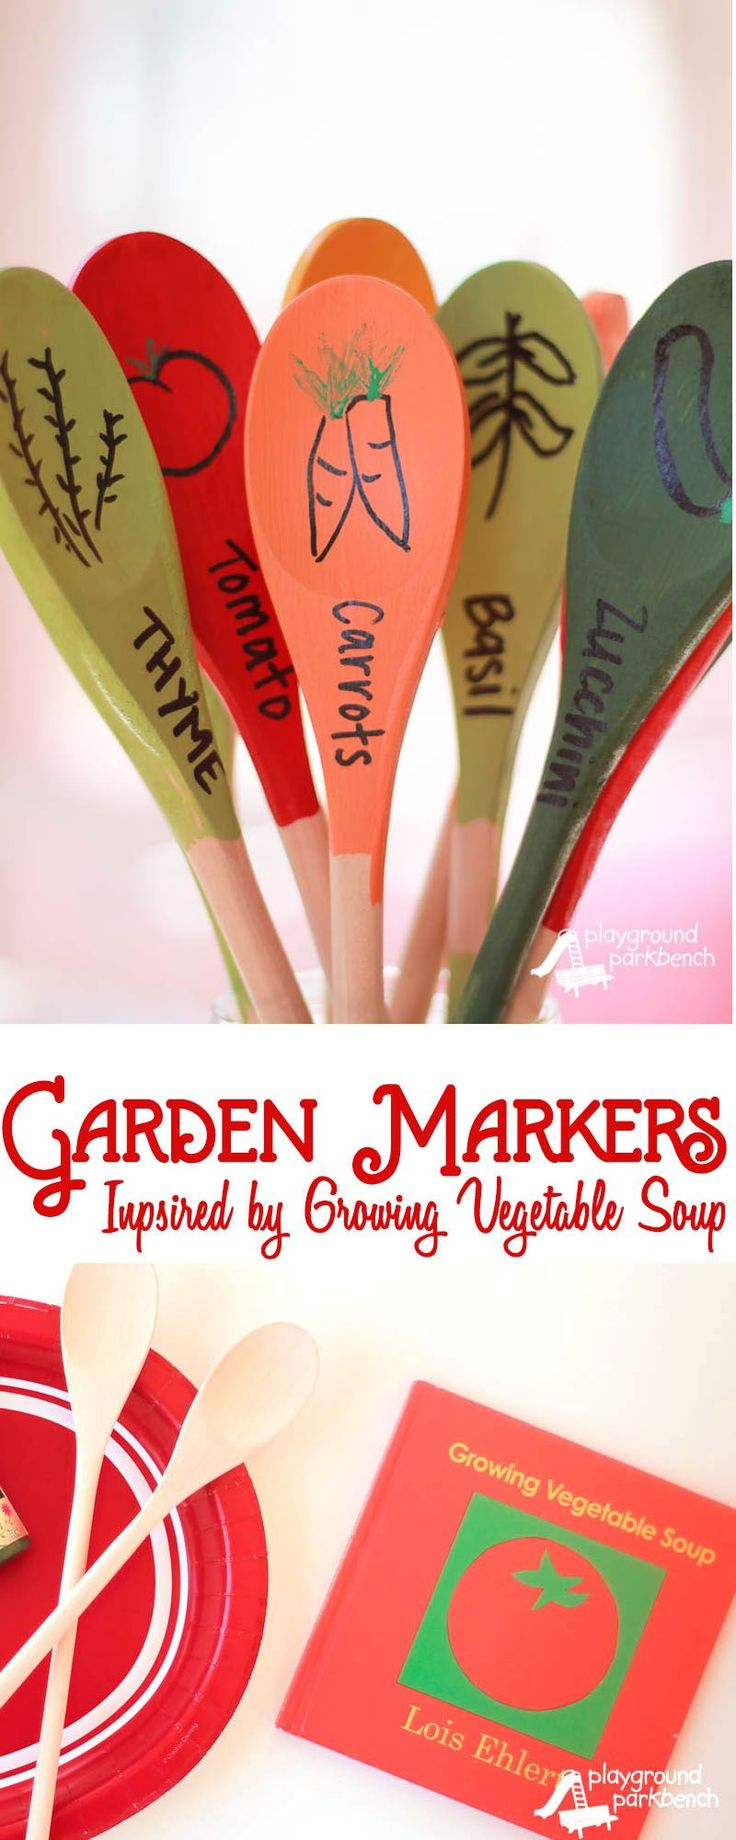 diy garden markers inspired by lois ehlert - Vegetable Garden Ideas For Kids